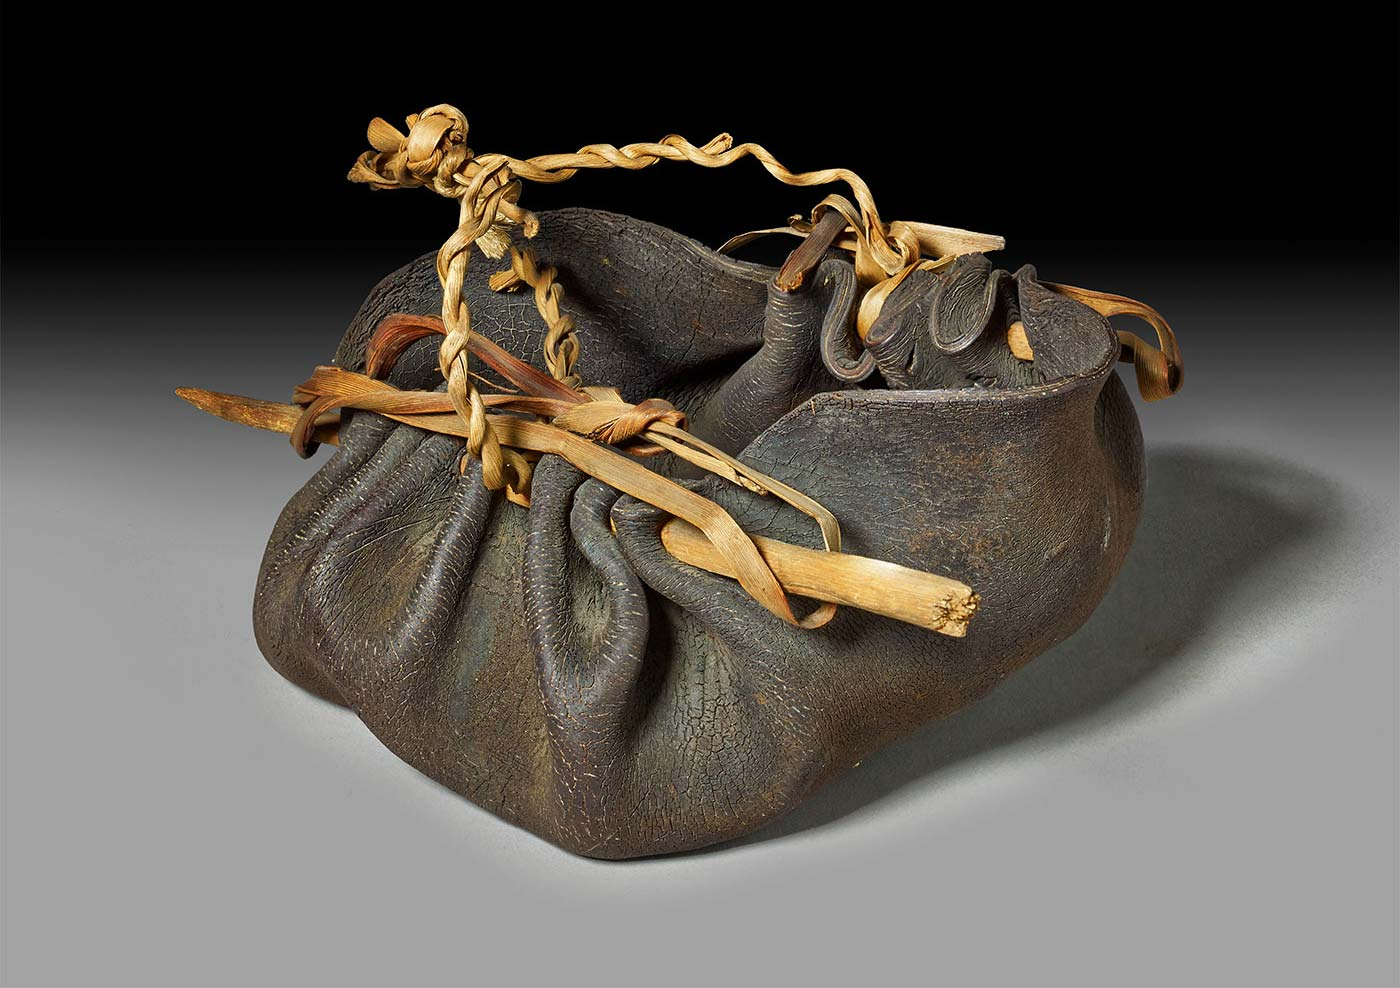 water vessel made from kelp, wood and fibre.